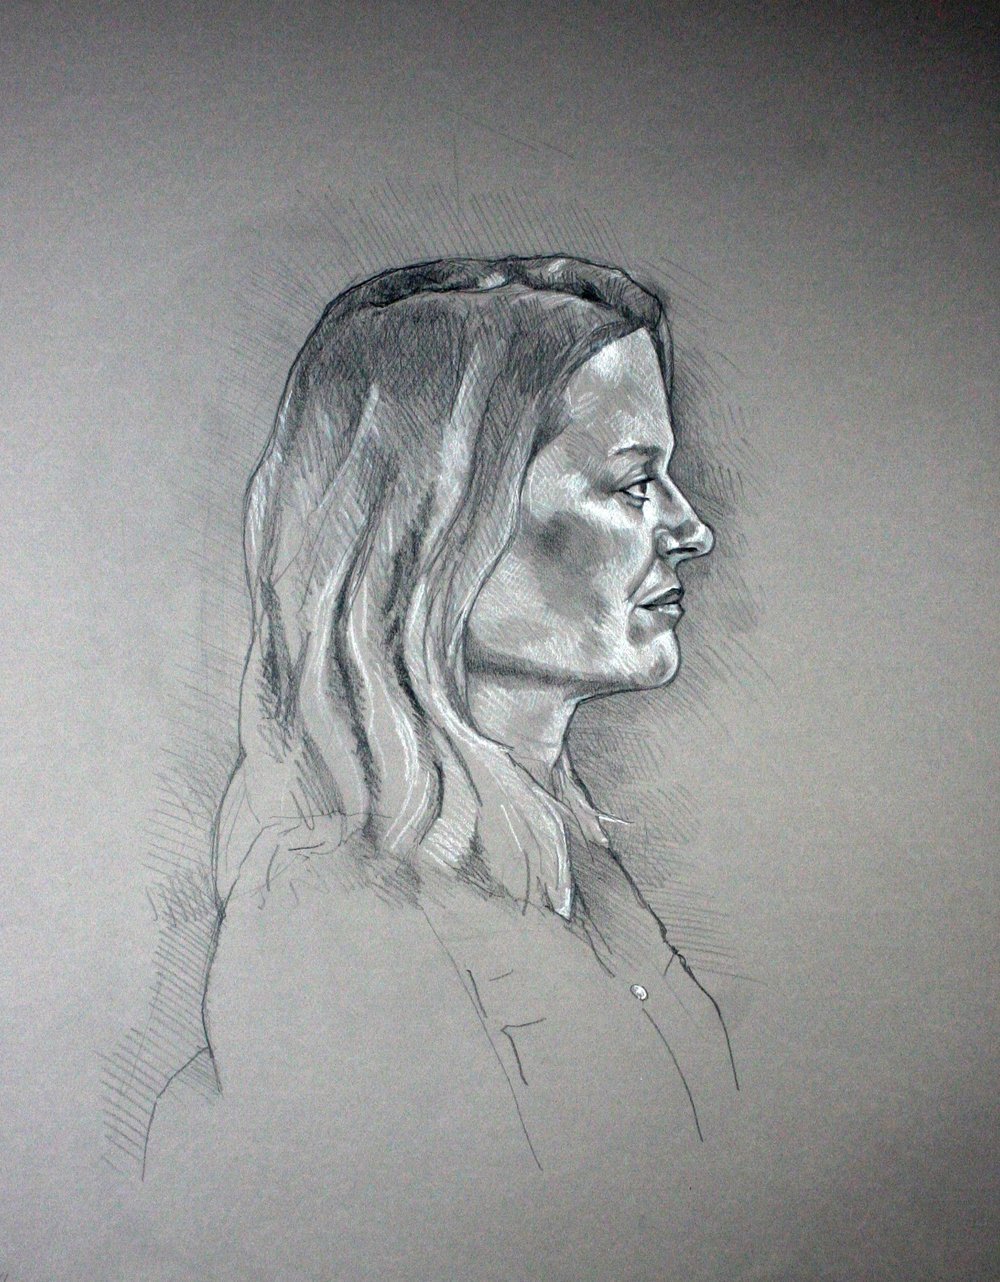 Darren Hamm did this drawing of his wife.